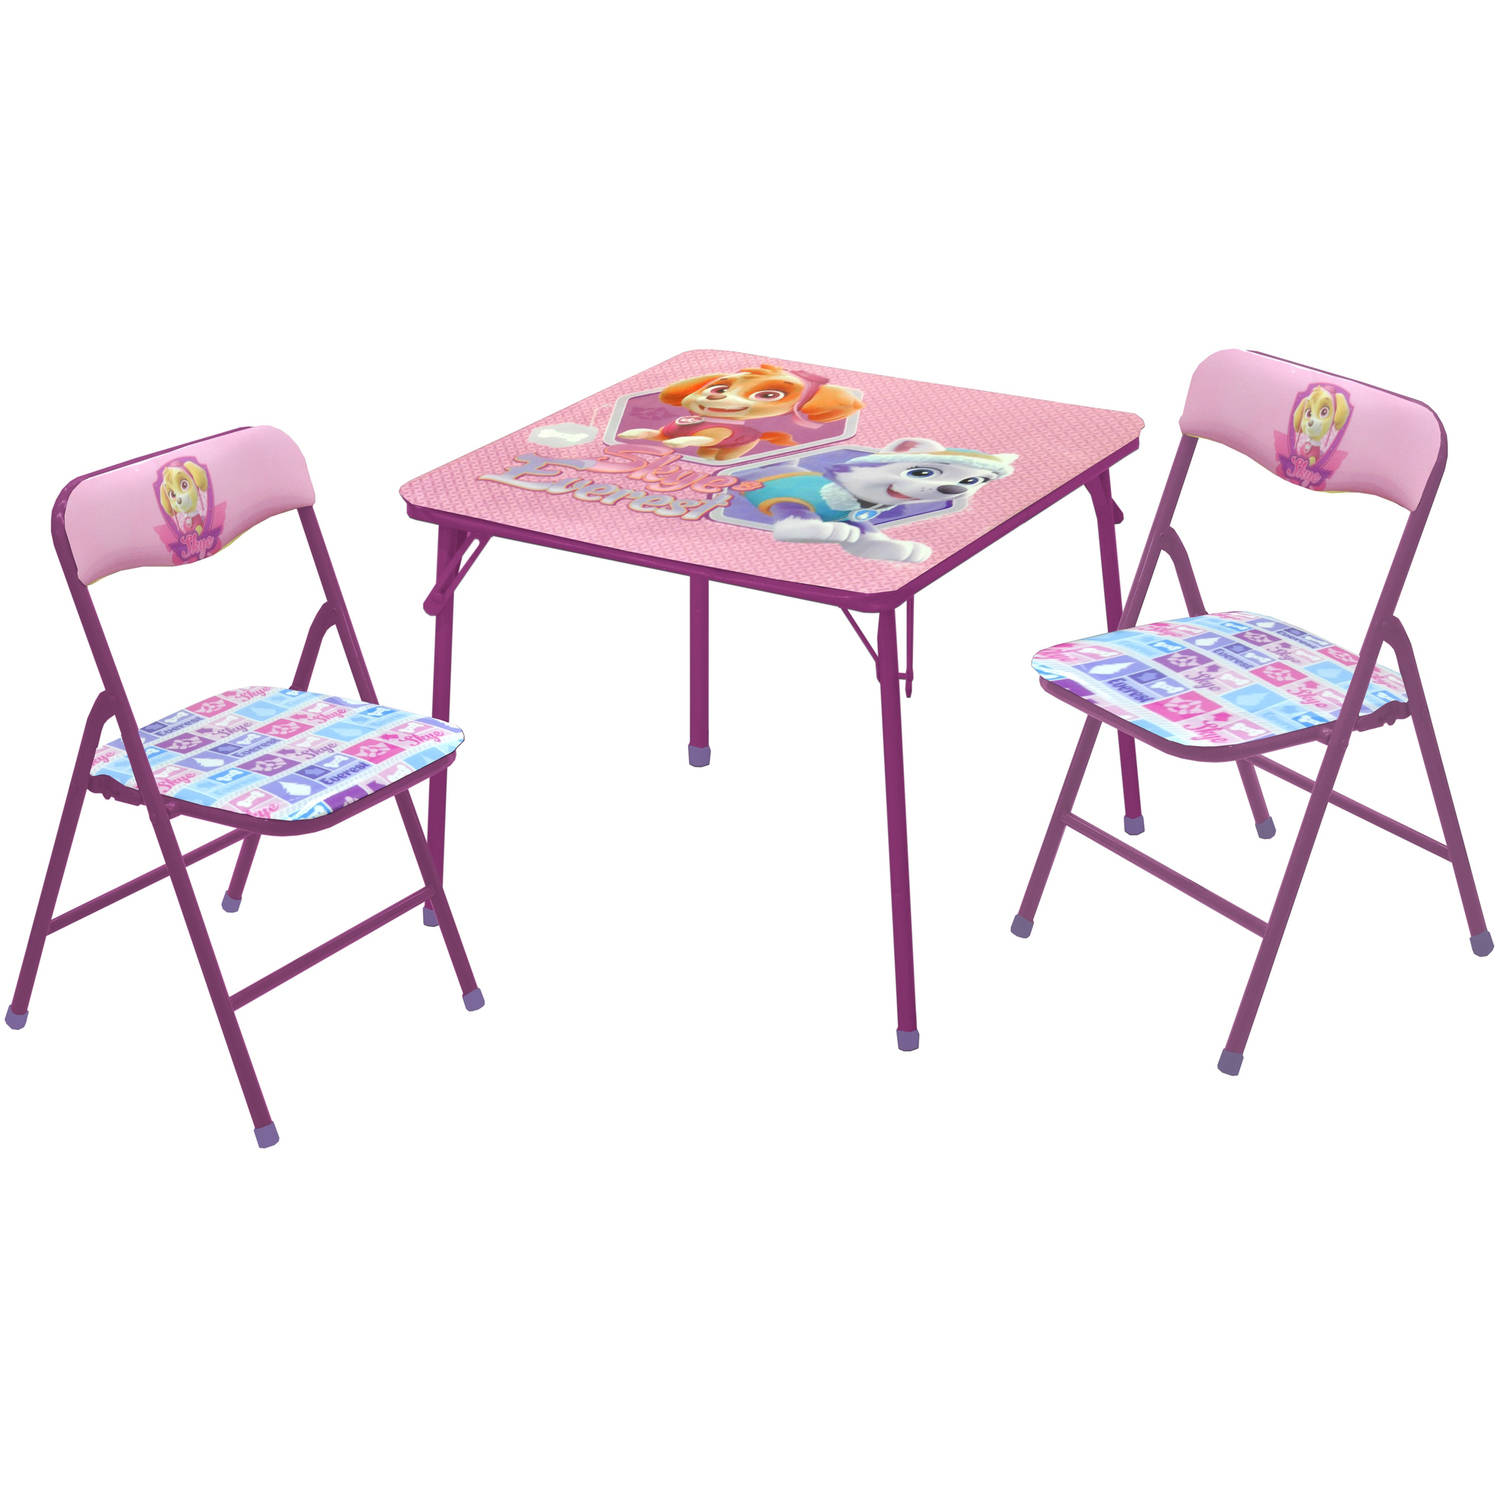 Nickelodeon Paw Patrol Skye Toddler Child 3 Piece Table